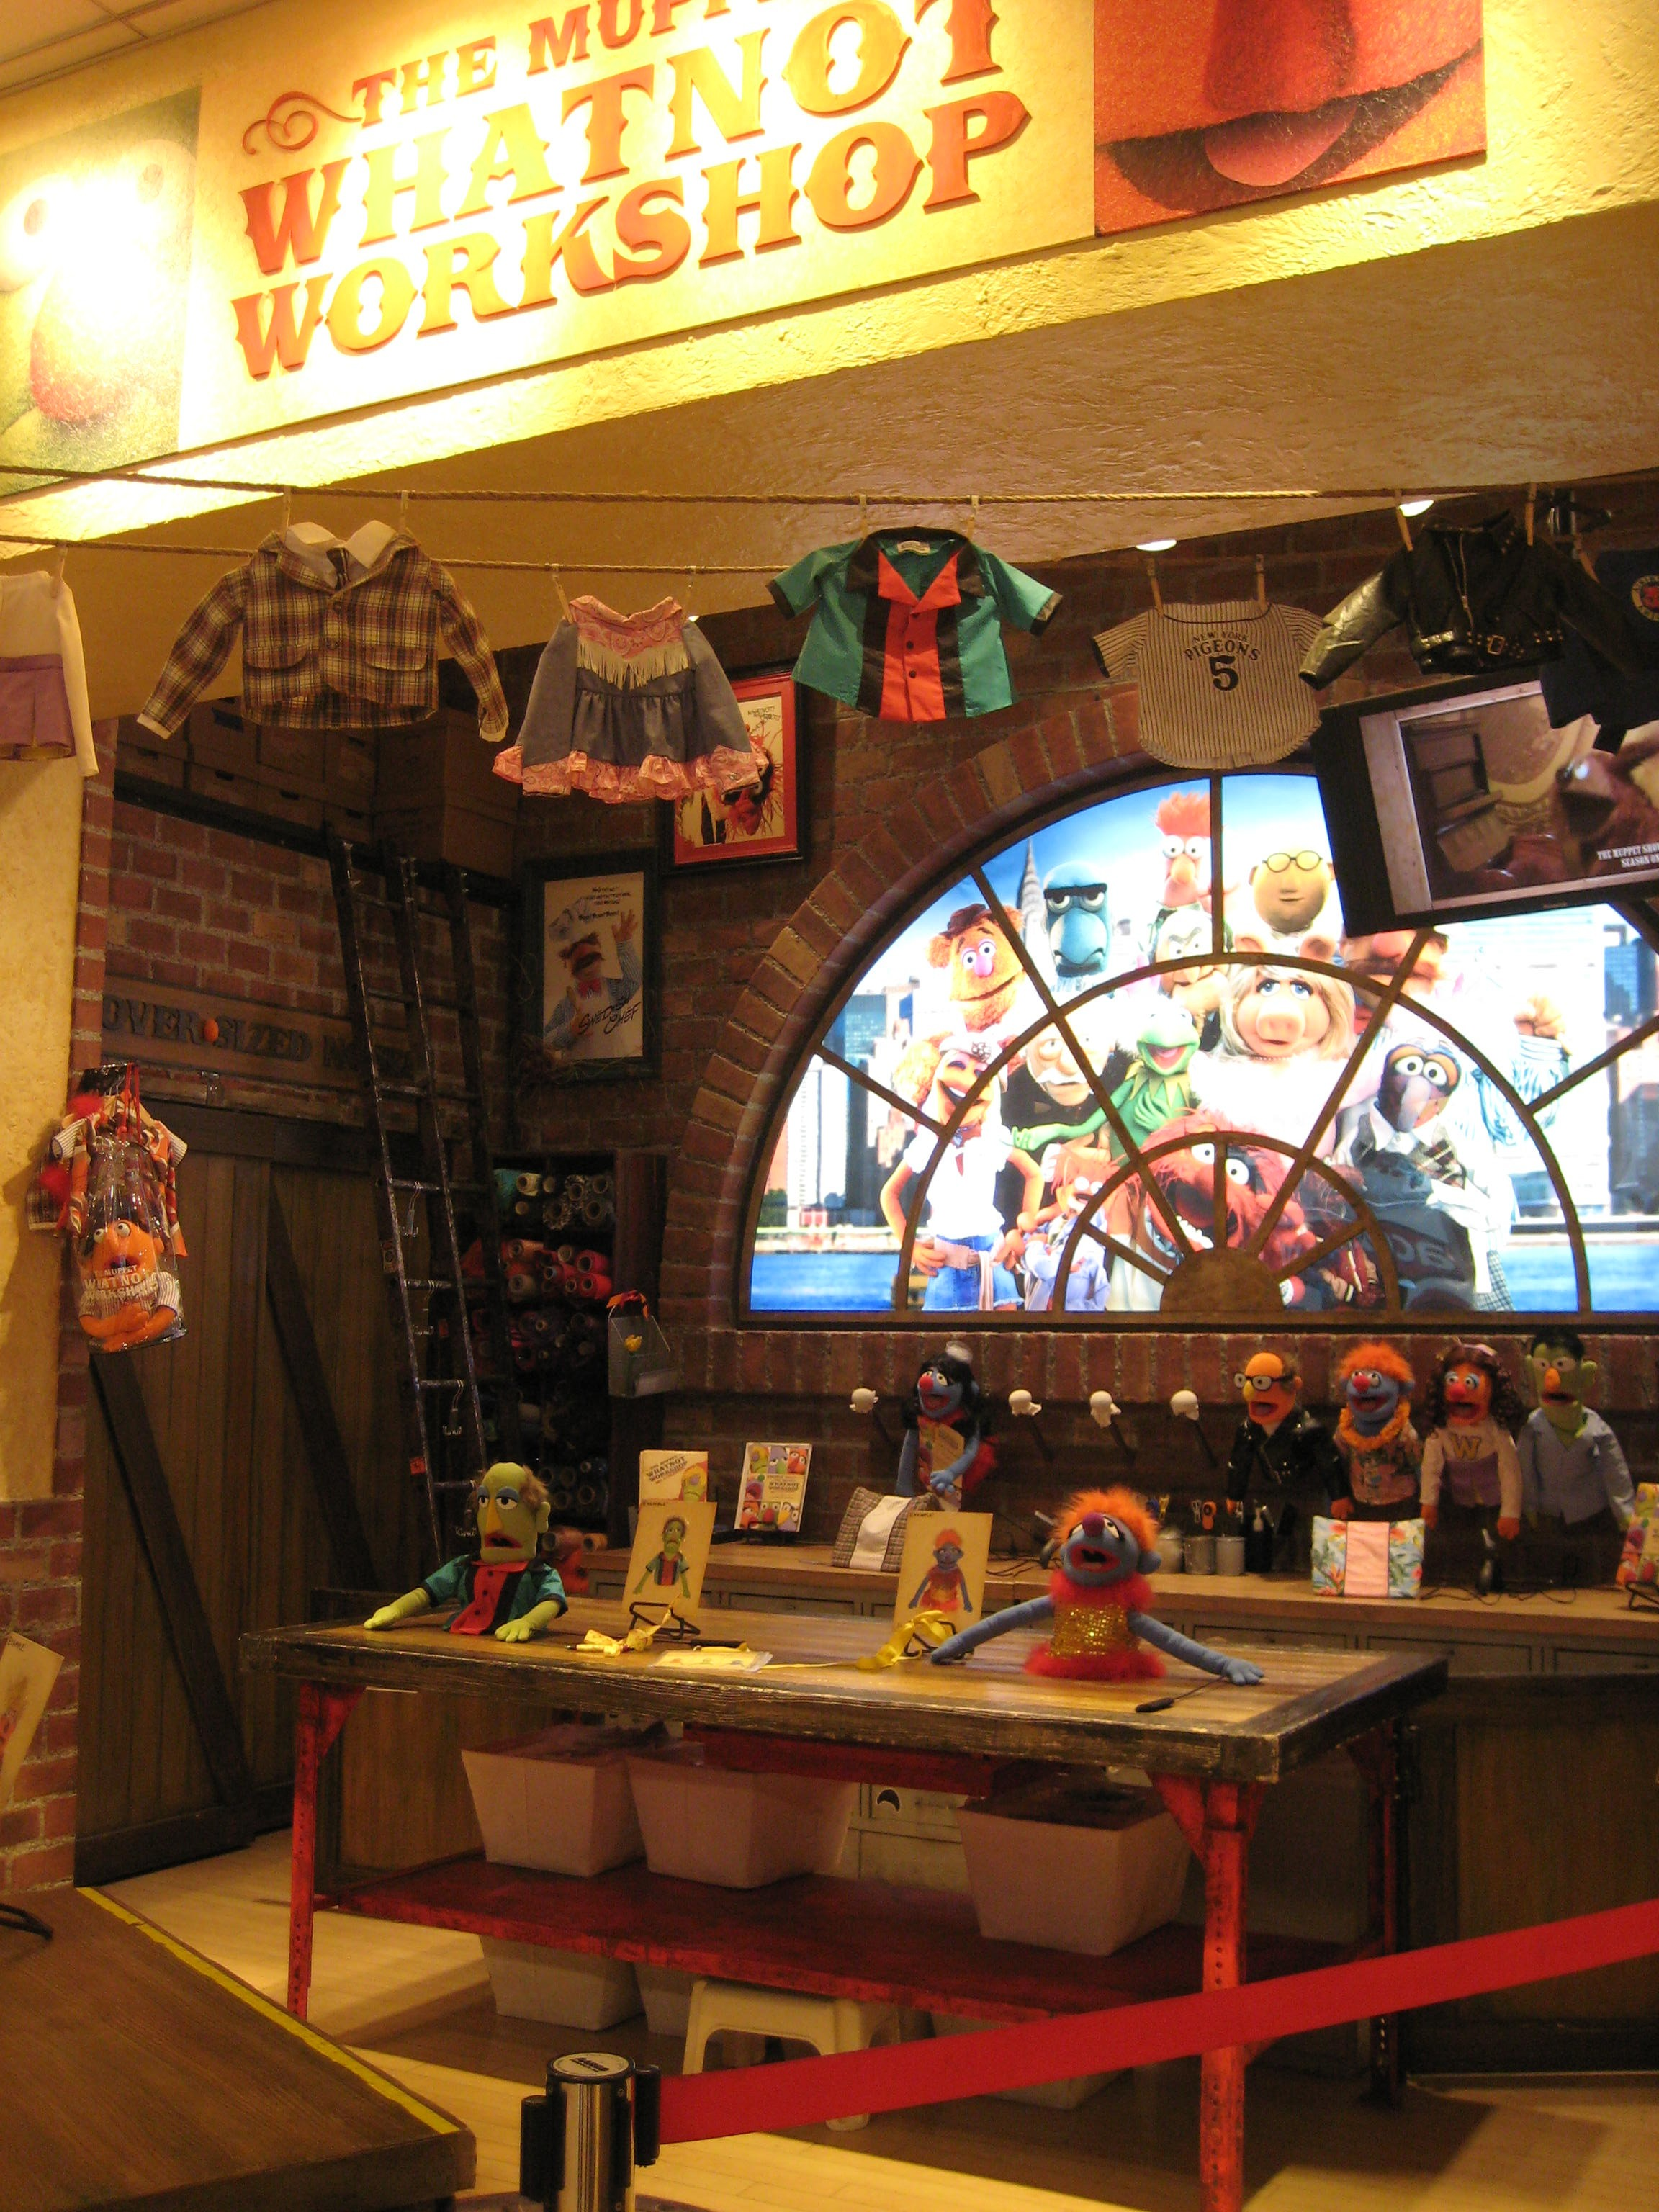 Muppet Workshop at FAO Schwarz